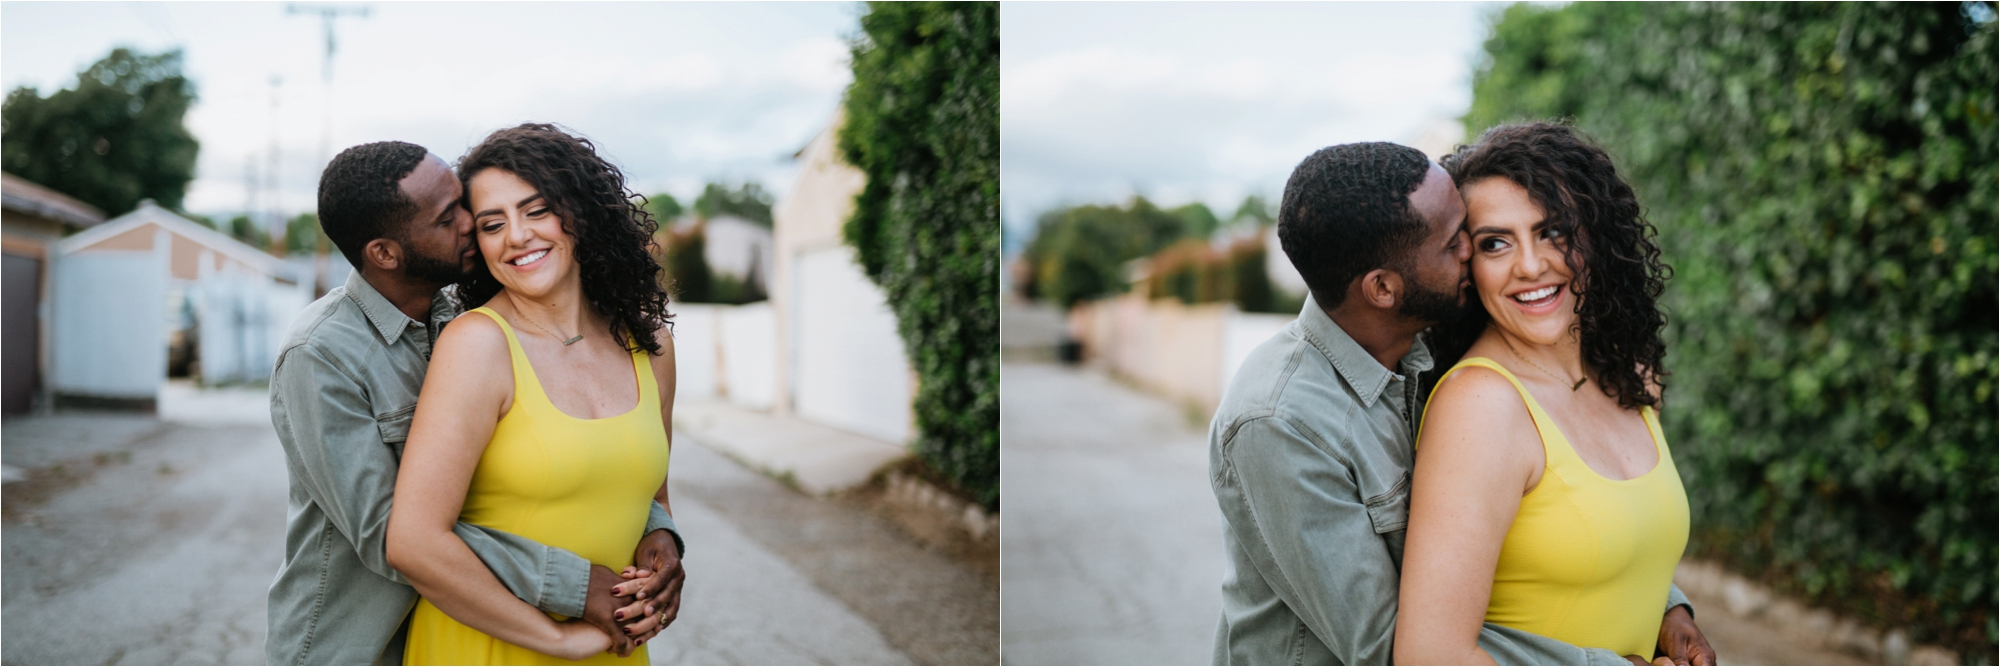 los angeles wedding photographer engagement in home session west covina love interracial